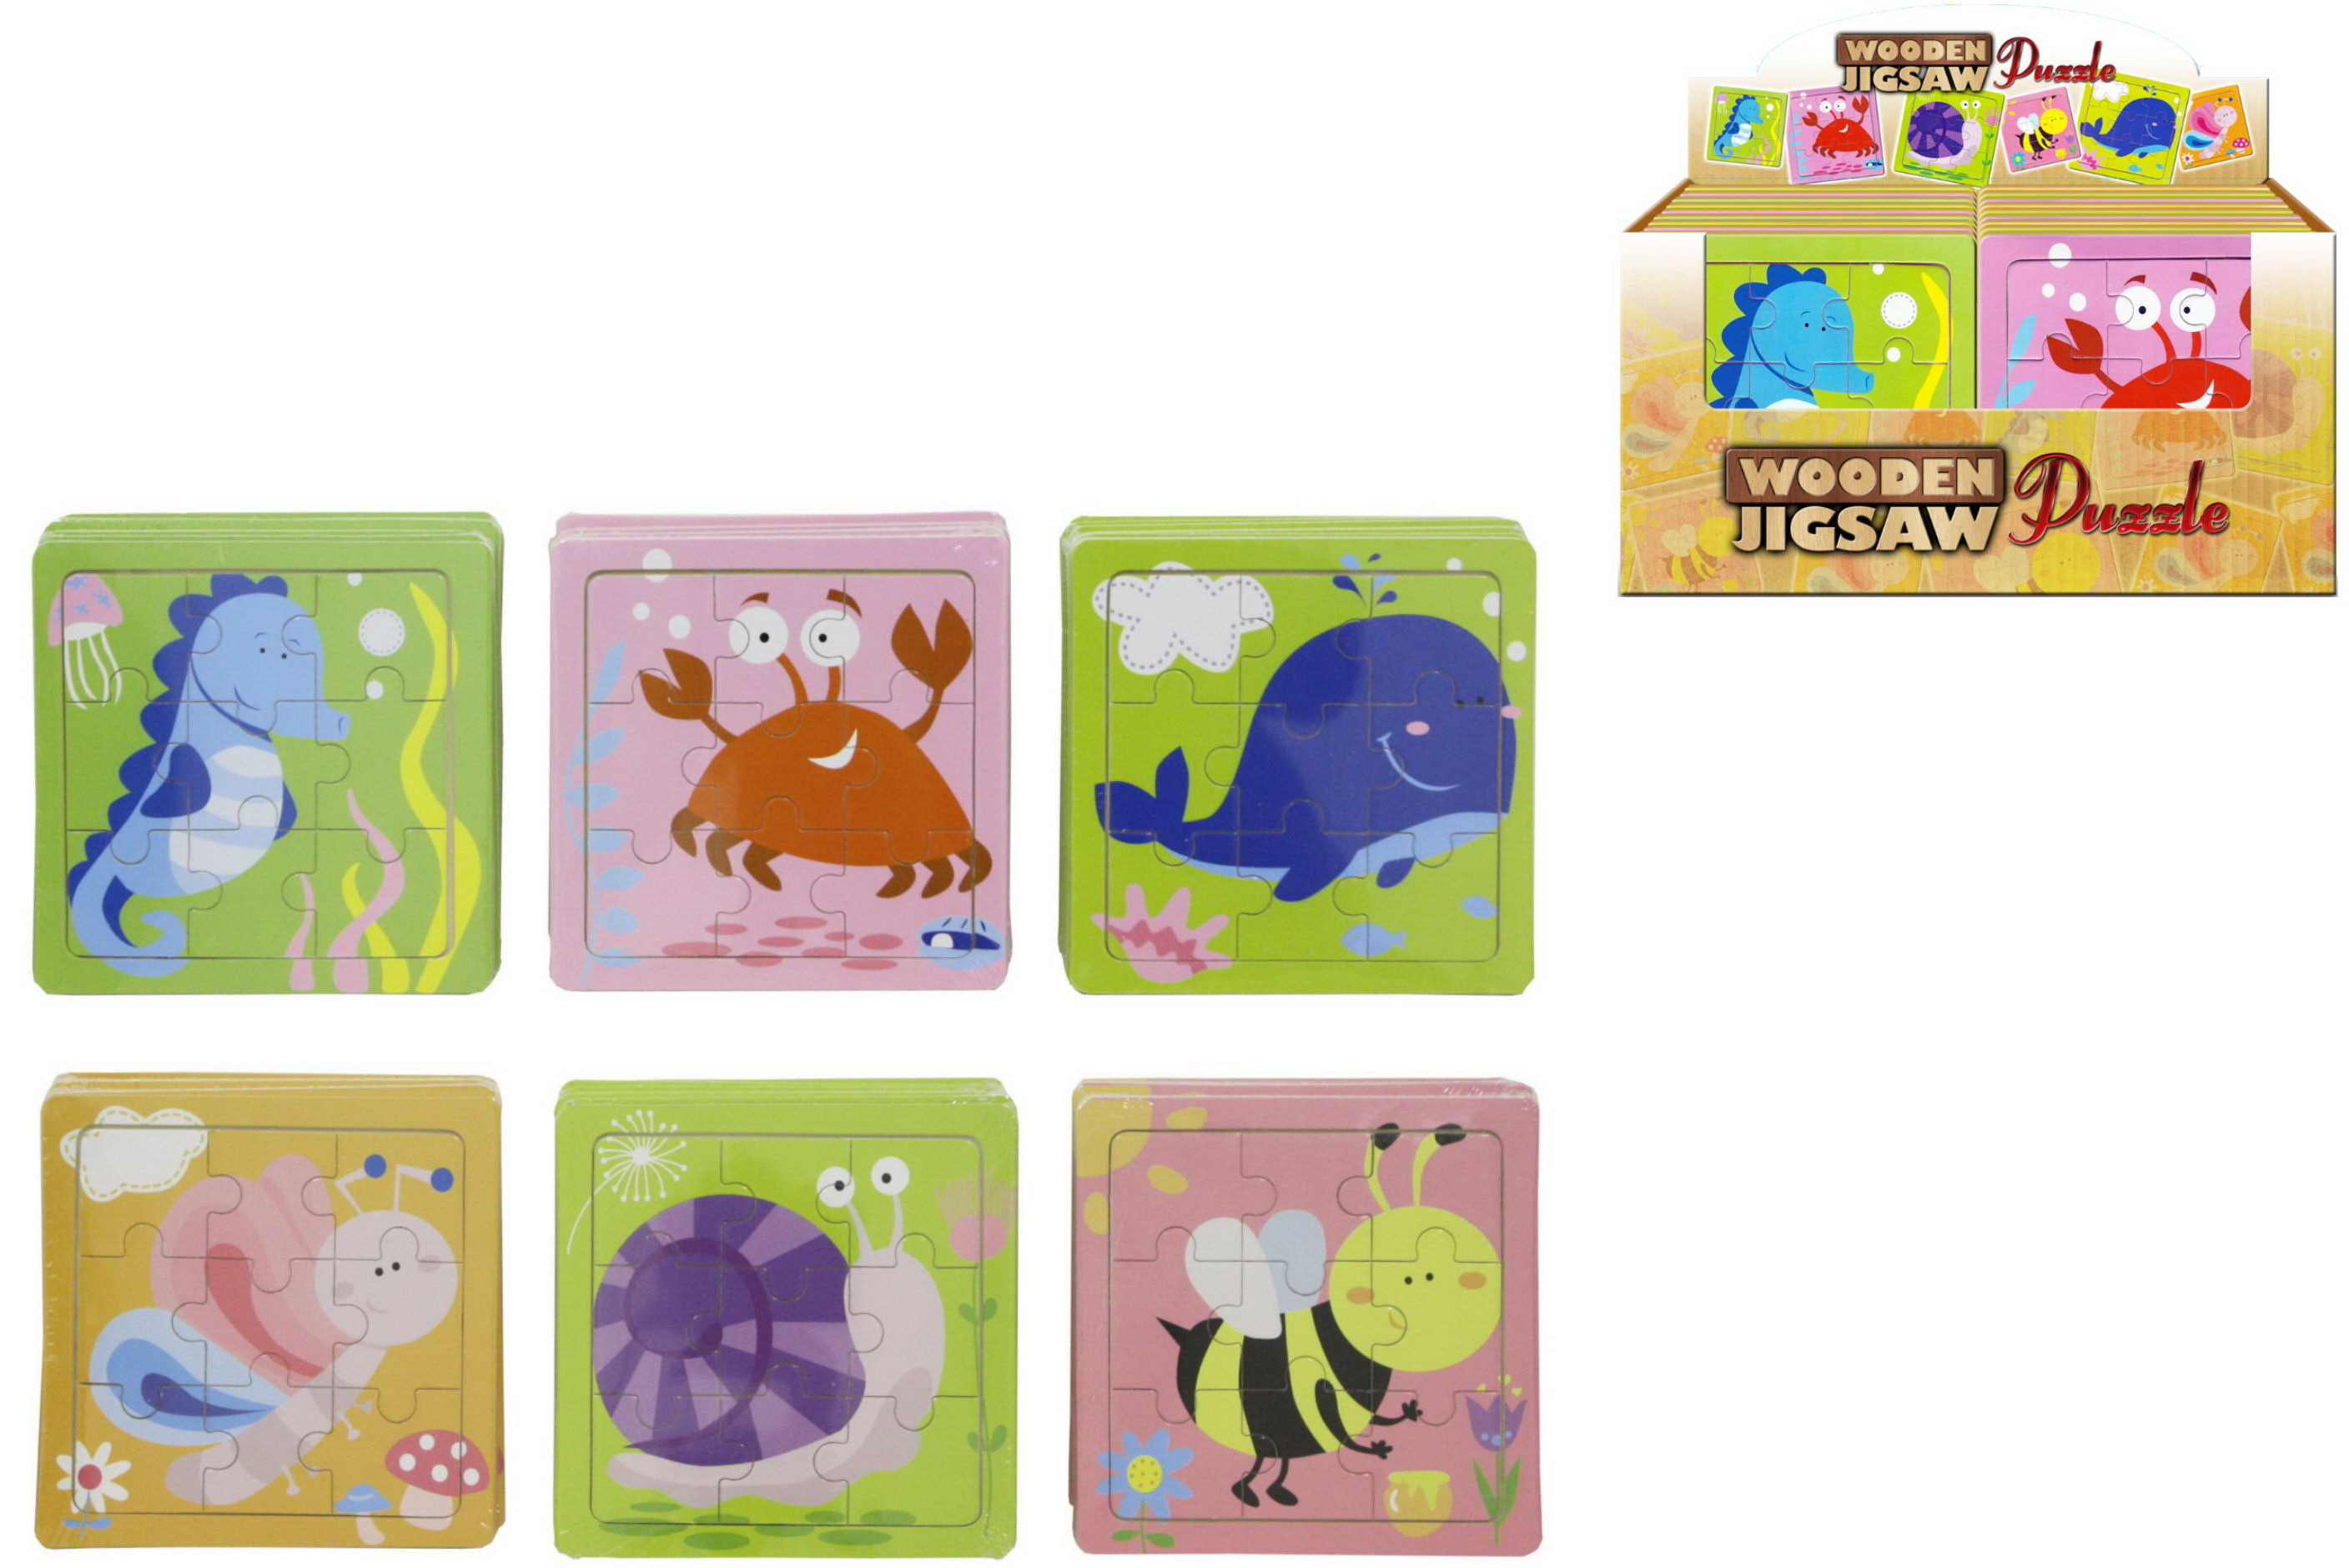 Wooden Jigsaw Puzzle In Display Box - 6 Assorted